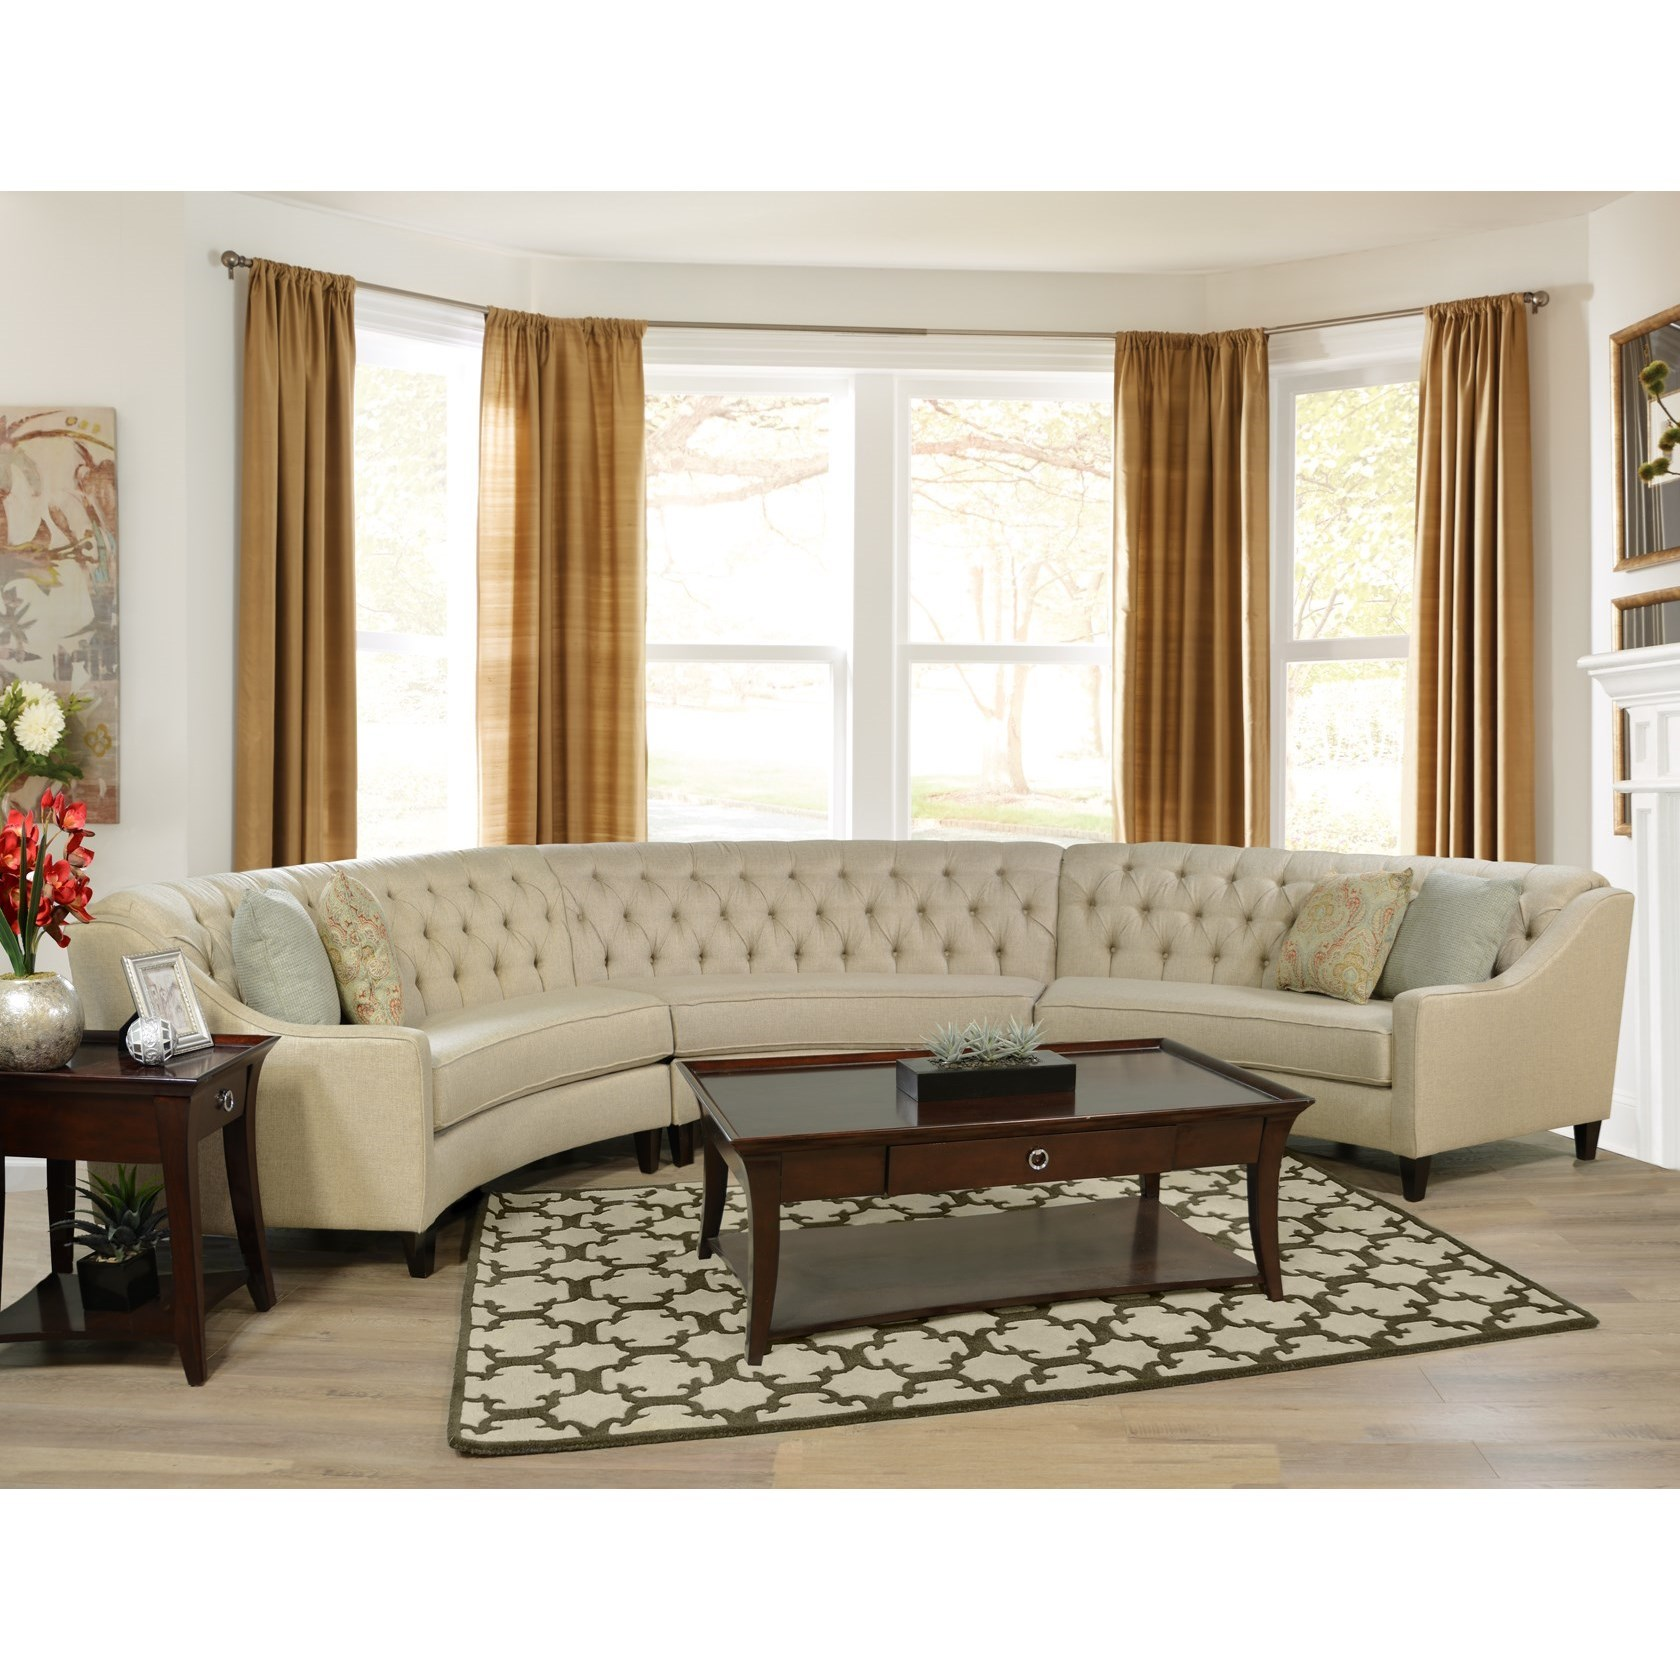 round sectional sofa uk costco pet bed england finneran 3 piece curved moore 39s